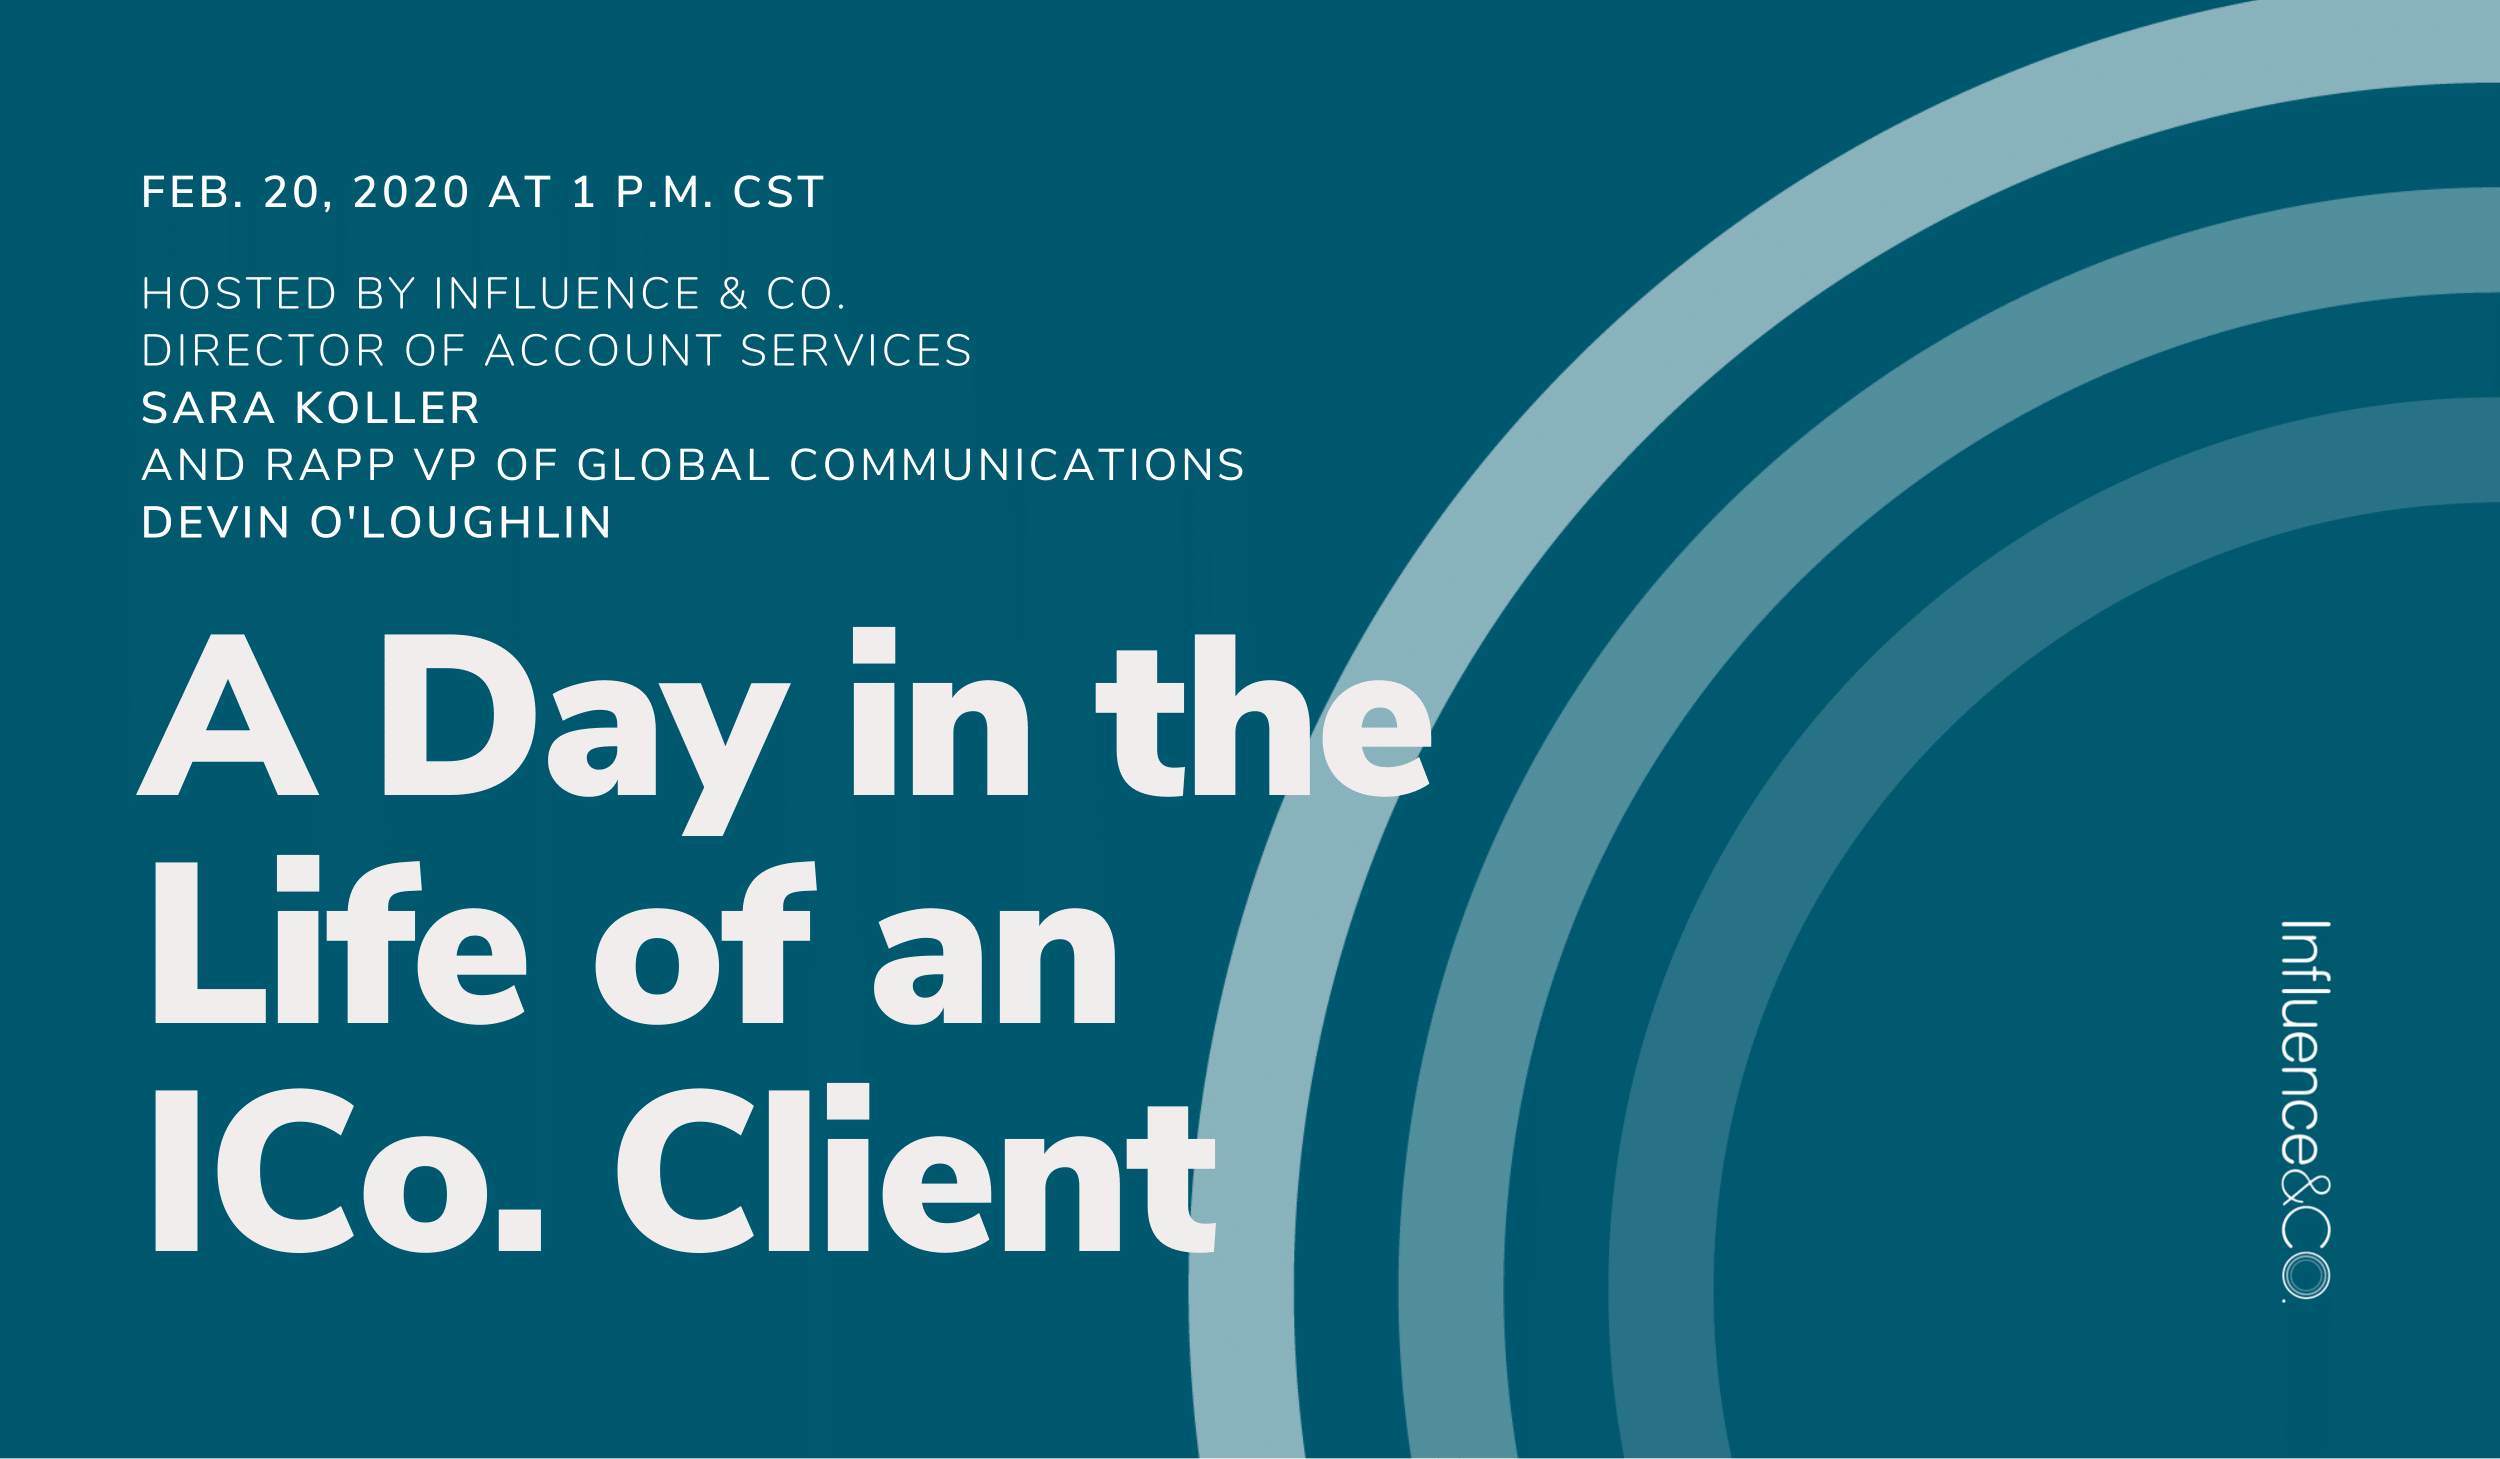 A Day in the Life of an ICo. Client FINAL website header